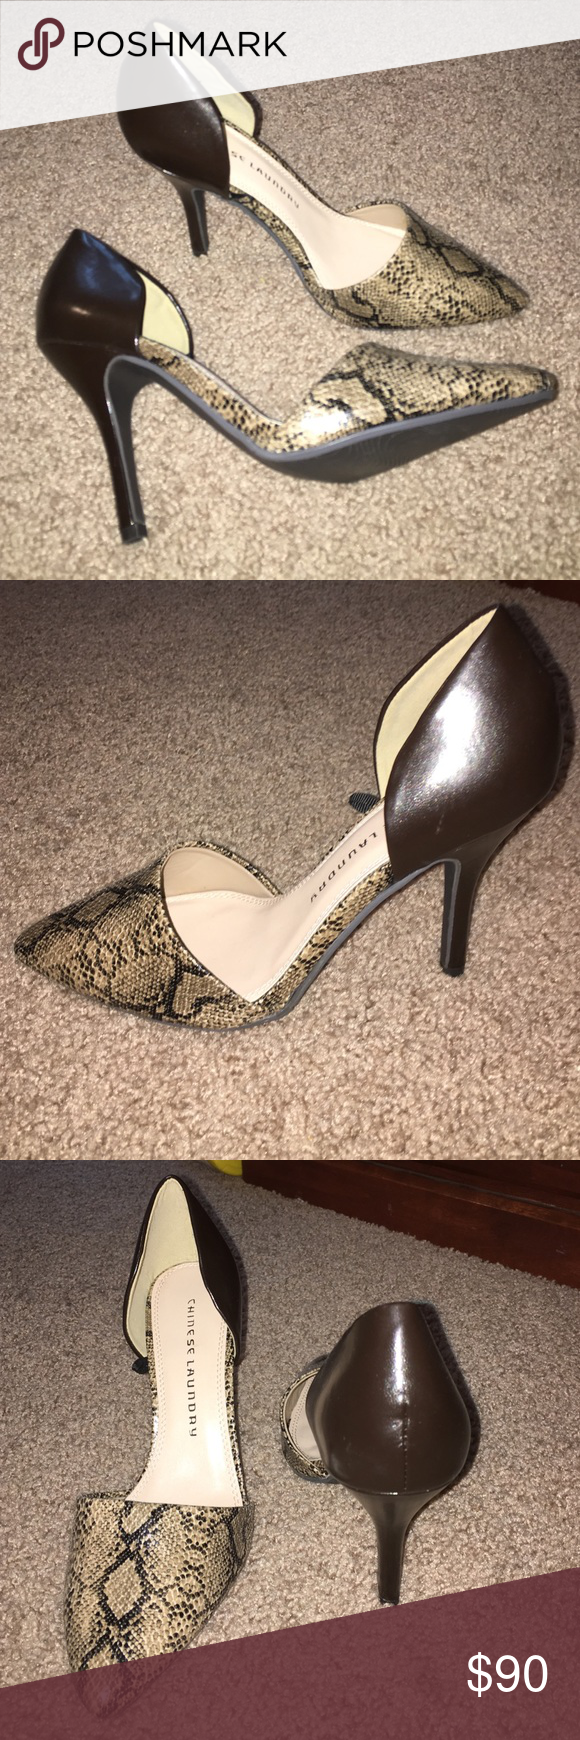 snakeskin pumps Love the shoes, super cute snakeskin pumps. These heels add flare to any outfit, only worn once. Very good condition. Chinese Laundry Shoes Heels